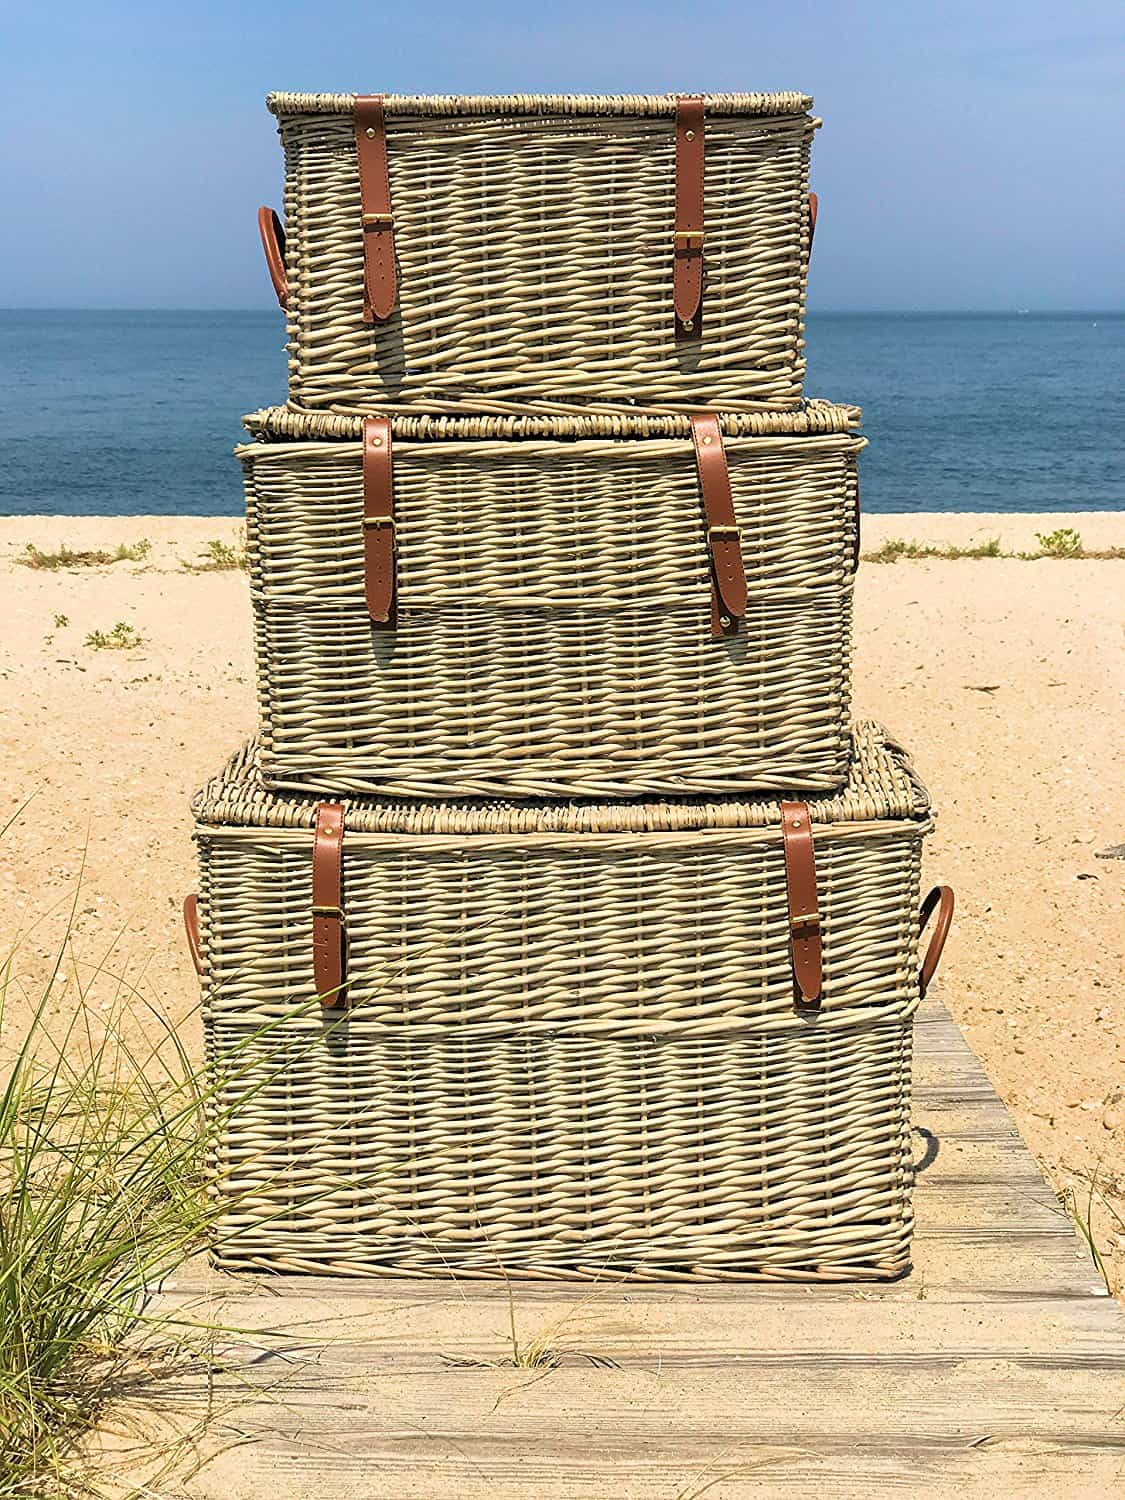 Cape Cod Stacking Baskets, I'm sharing How to Hide Toys in Your Living Room with these Farmhouse Toy Storage Ideas. A great way to blend fun with style!,